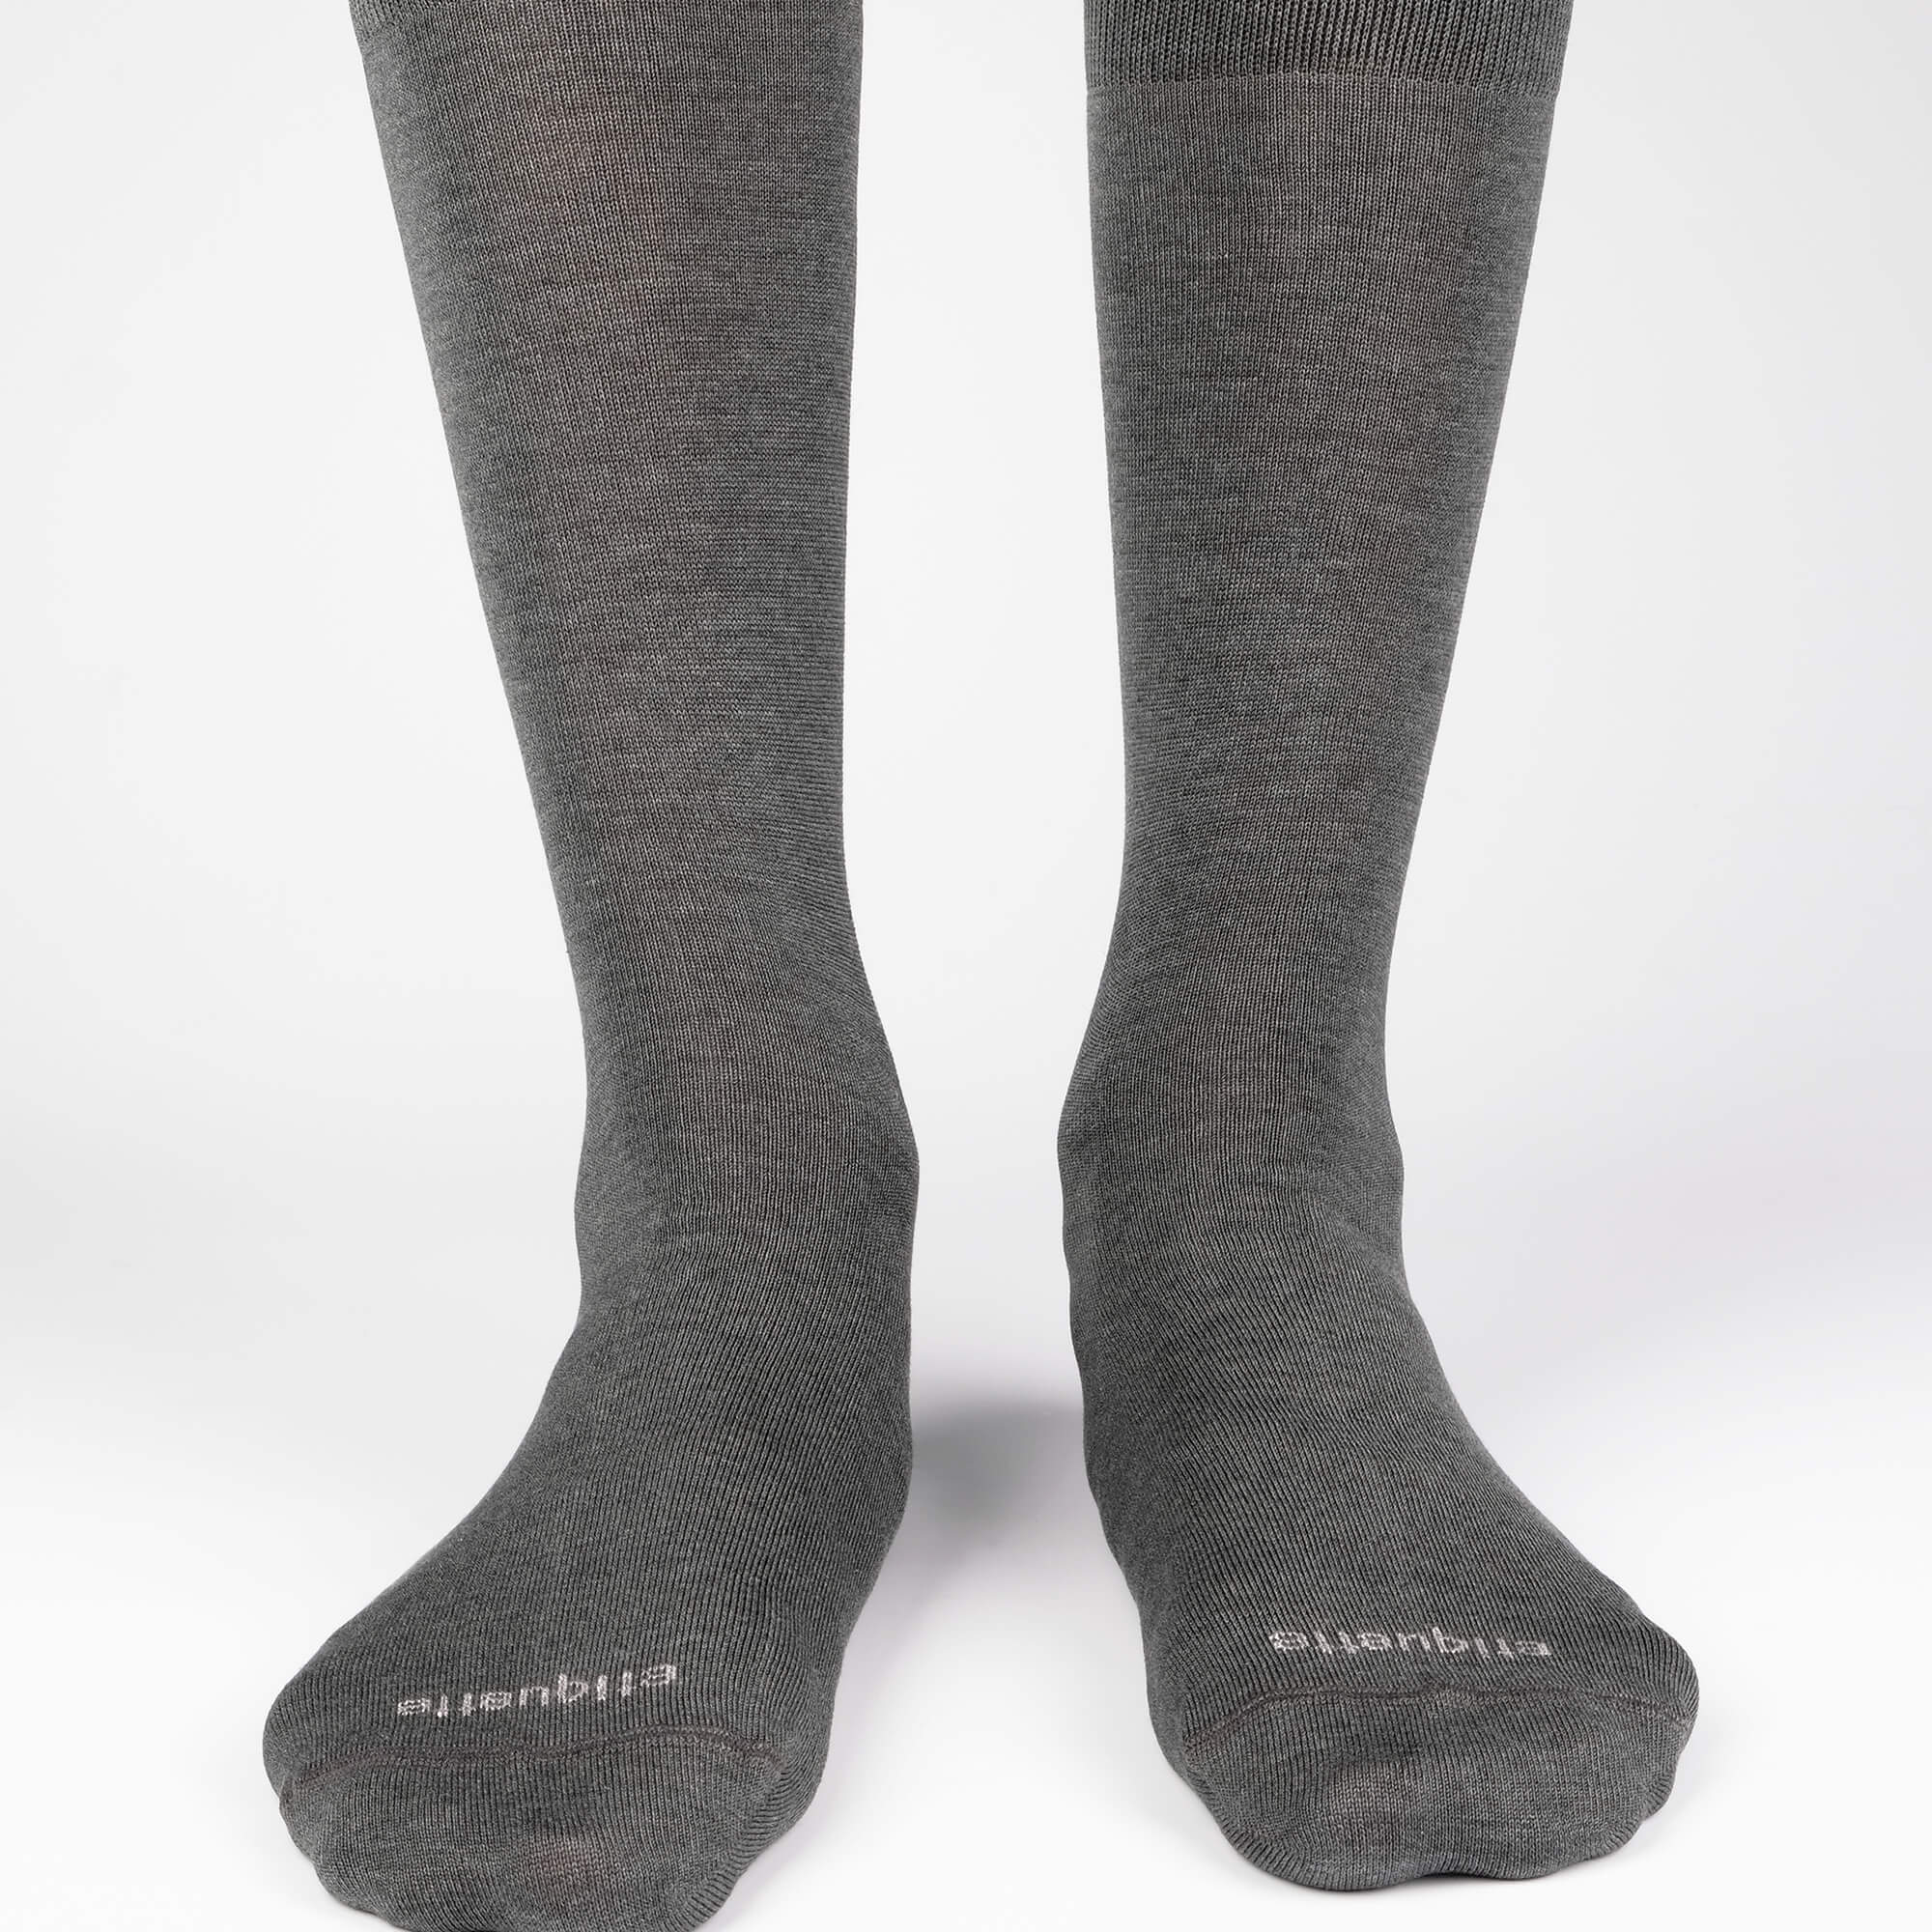 Mens Socks - Men's Crew Dress Socks 3 Pack - Dark Grey⎪Etiquette Clothiers